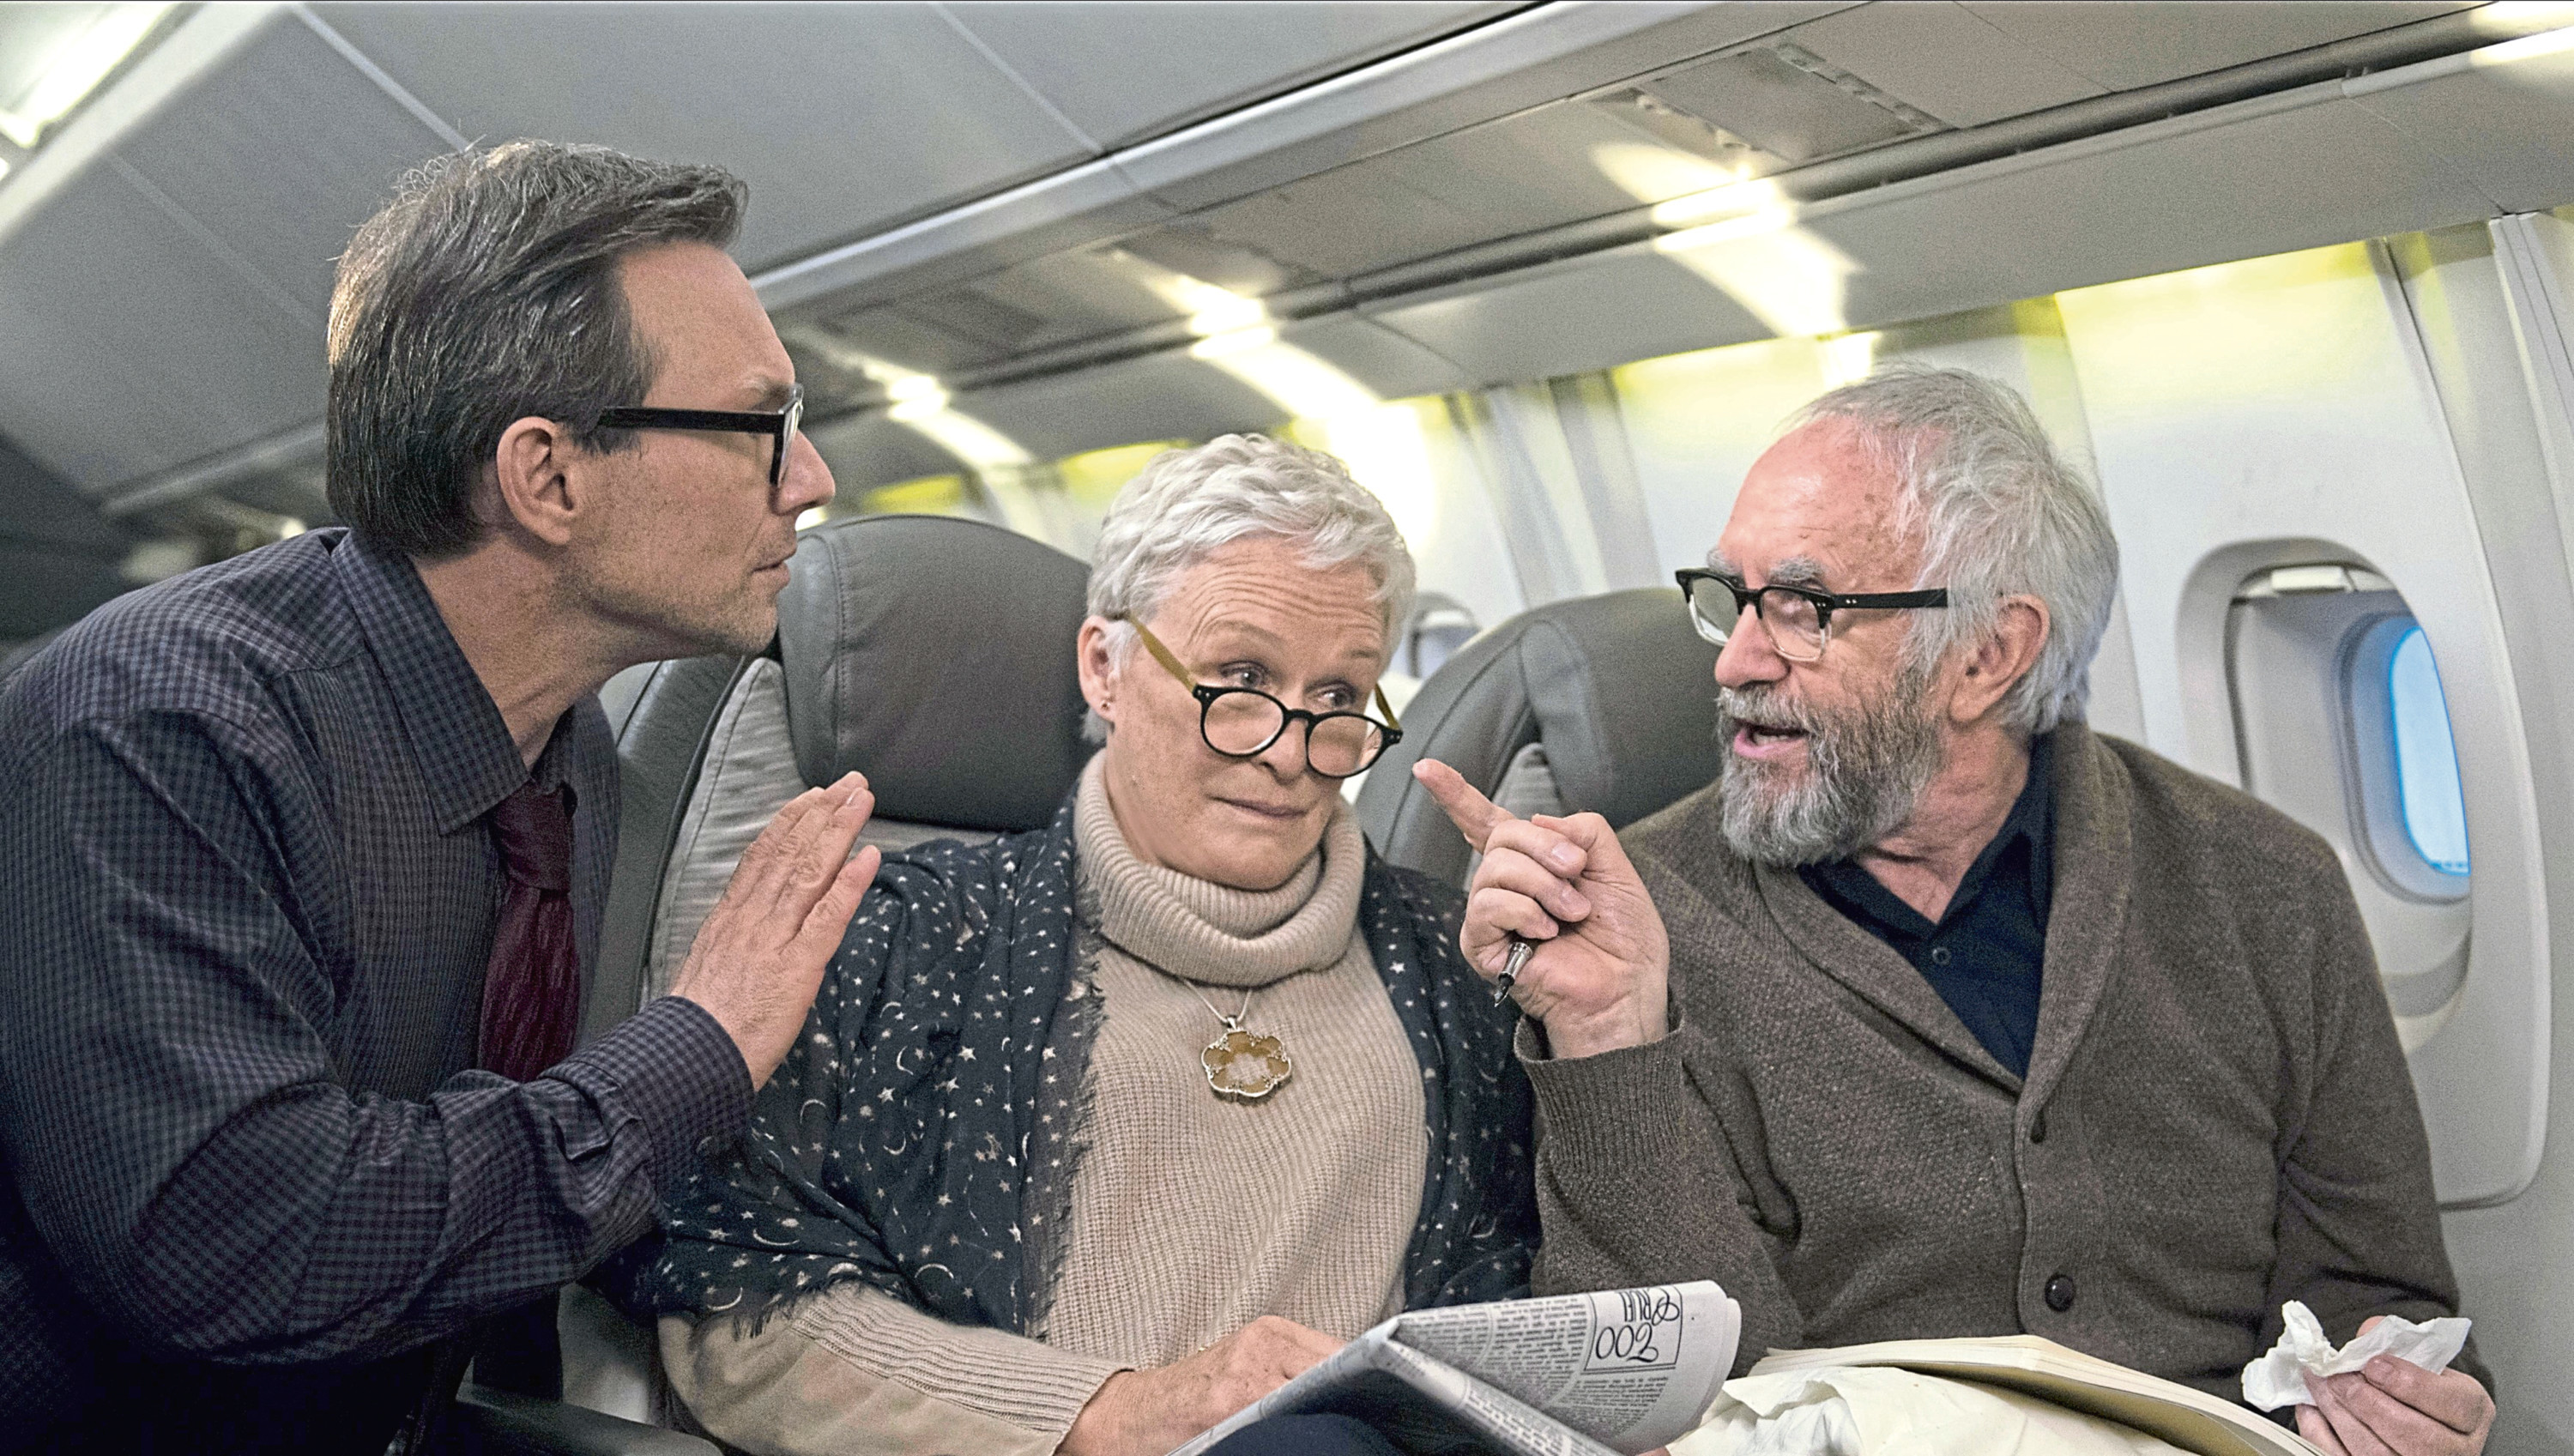 Christian Slater, Glenn Close and Jonathan Pryce star in The Wife which had scenes shot in various Scottish locations (Graeme Hunter / Meta Film London Ltd)